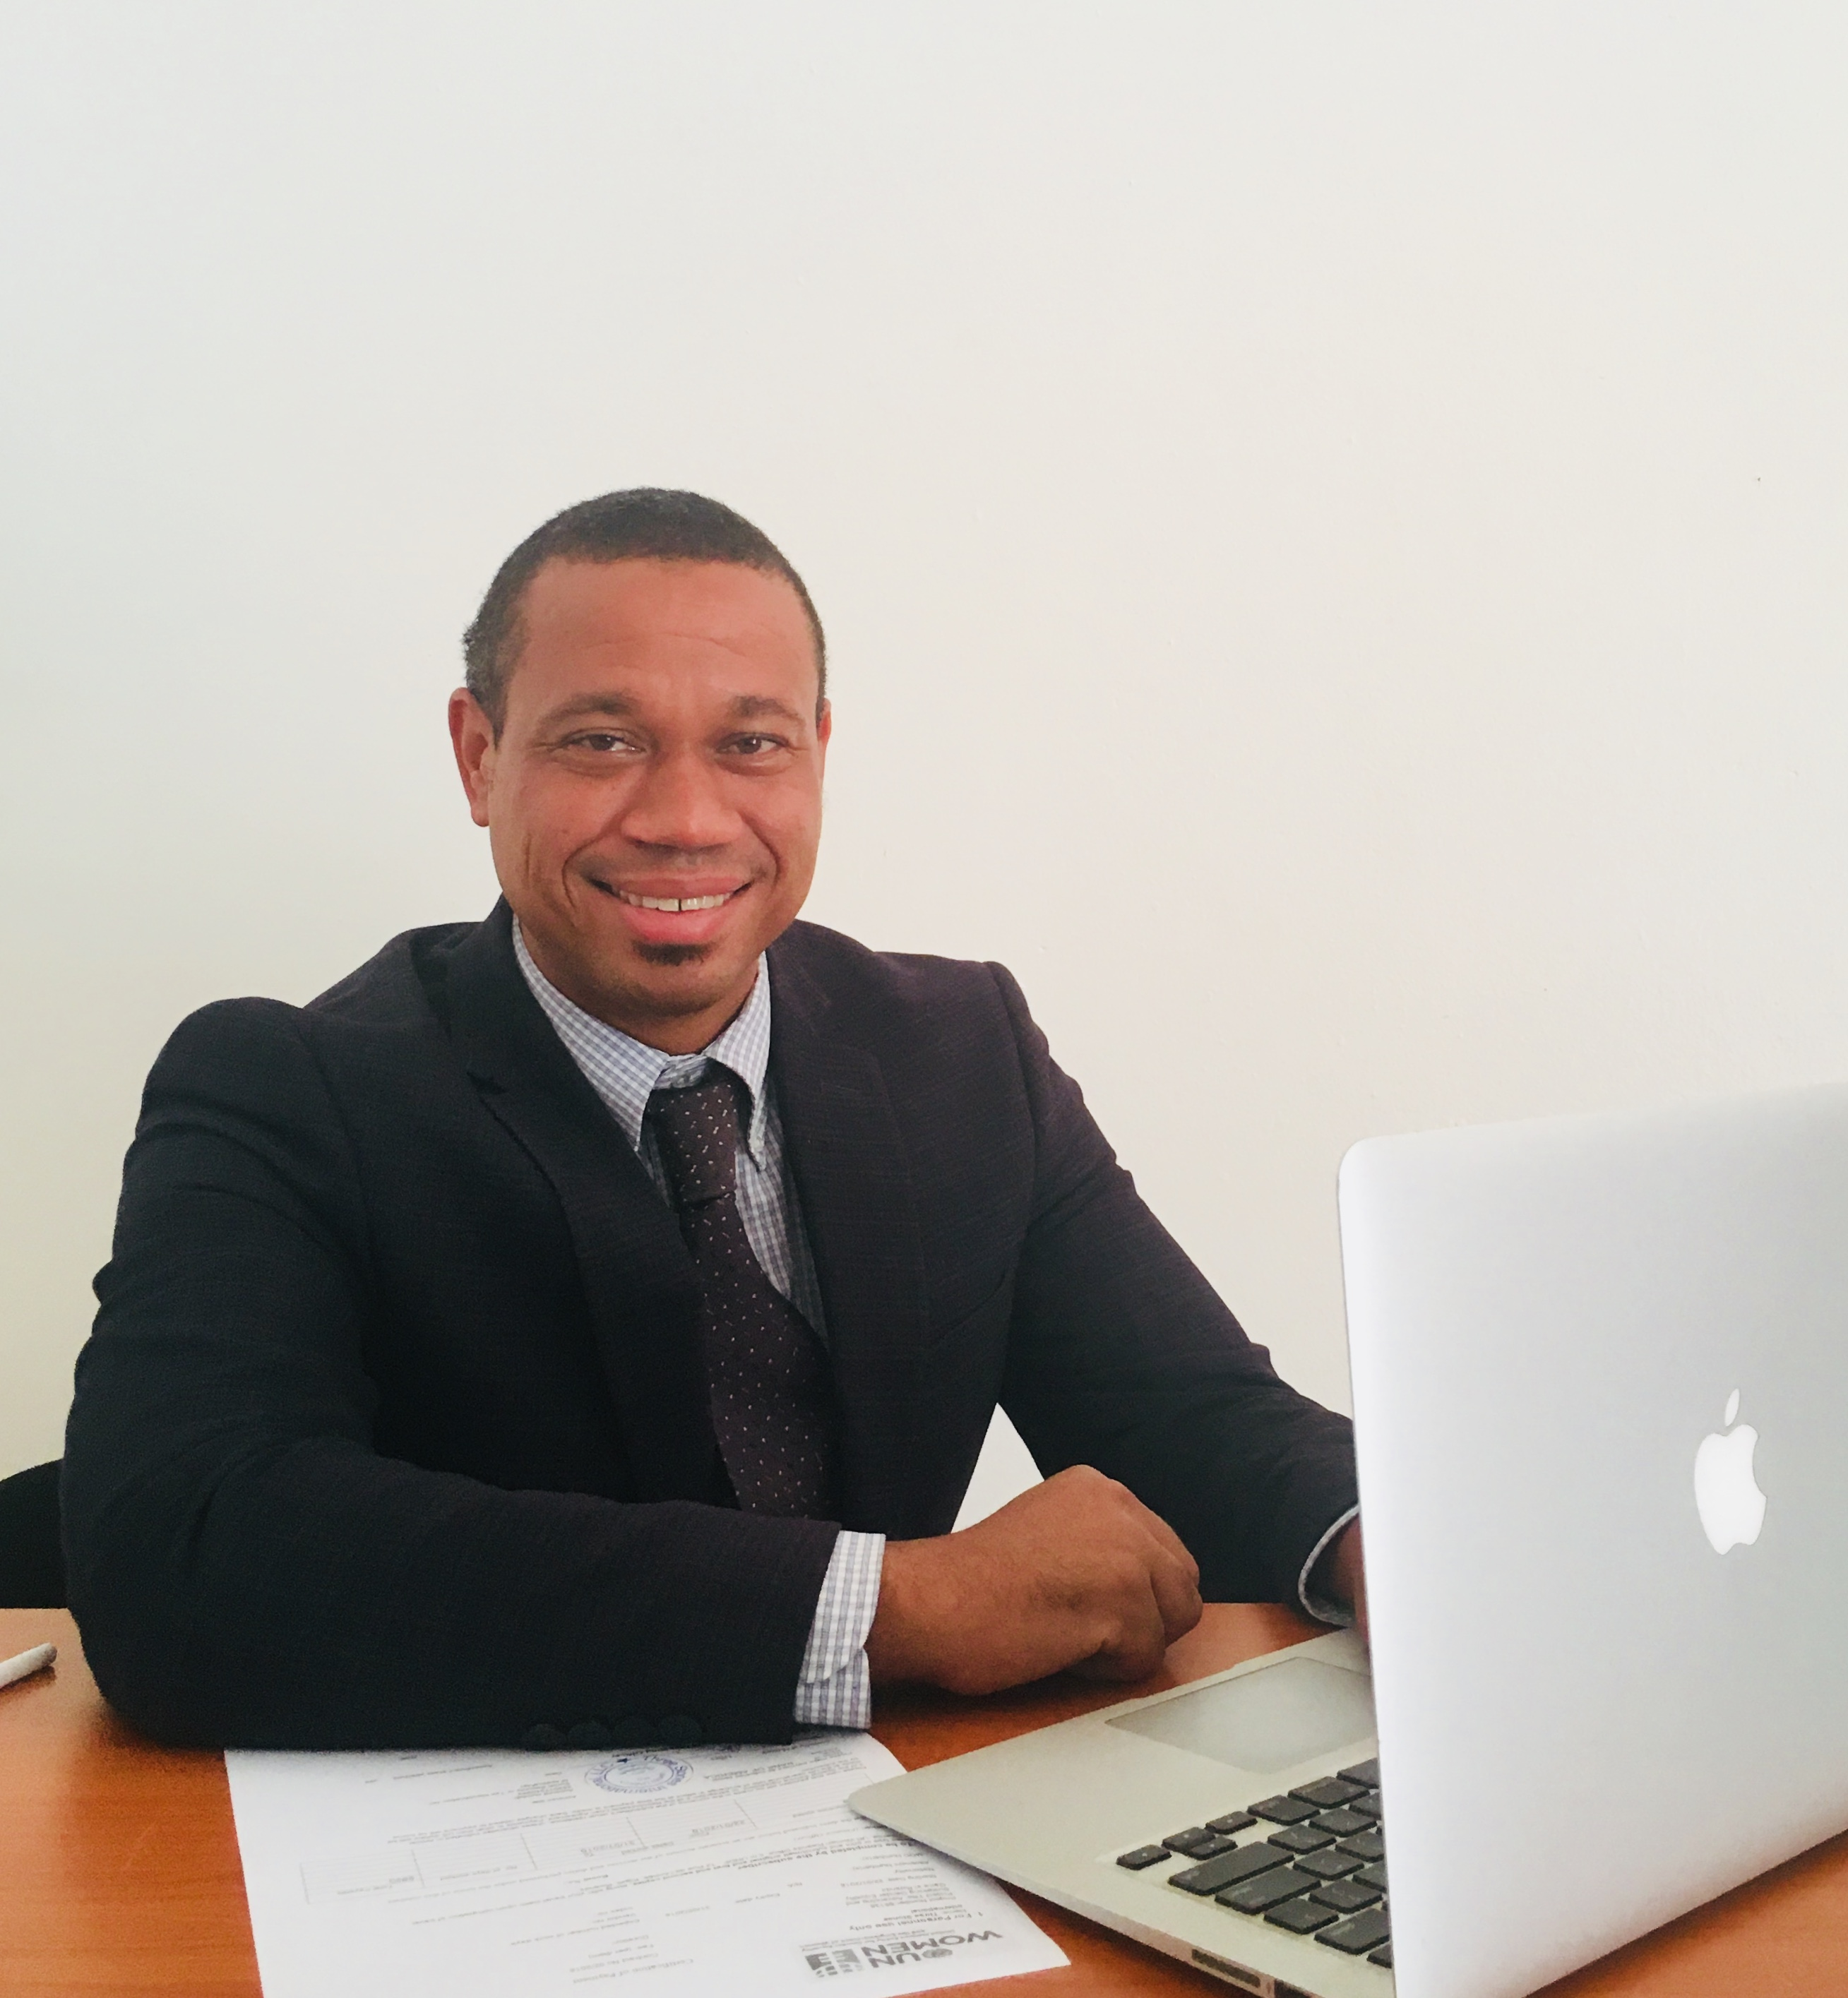 From Vermont to Rwanda and beyond: A conversation with SIT alum Jesse Routte